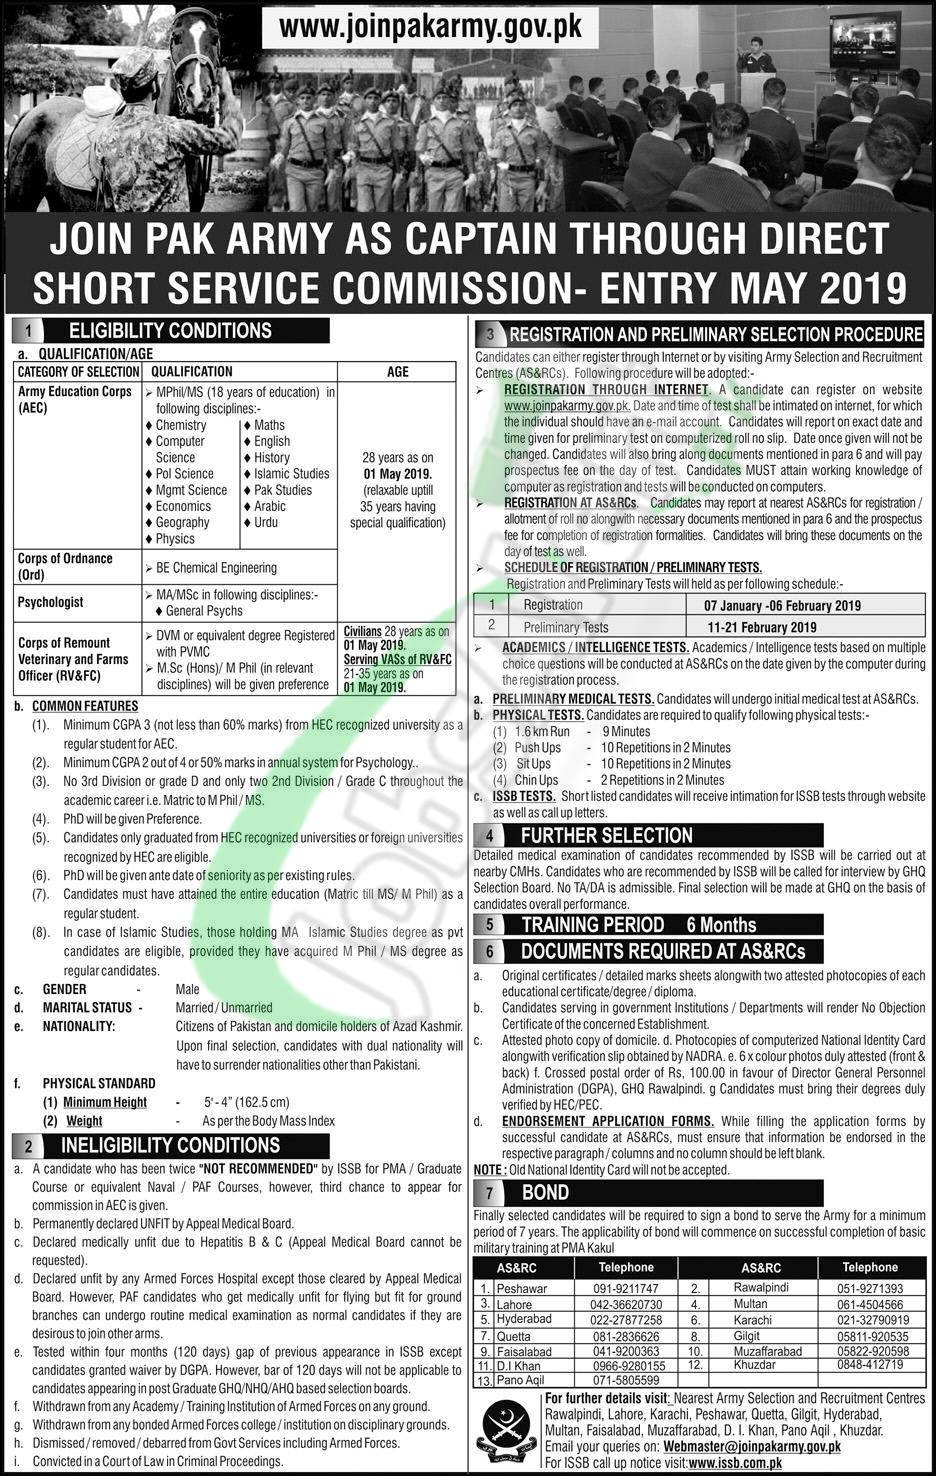 Join Pak Army as Captain 2019